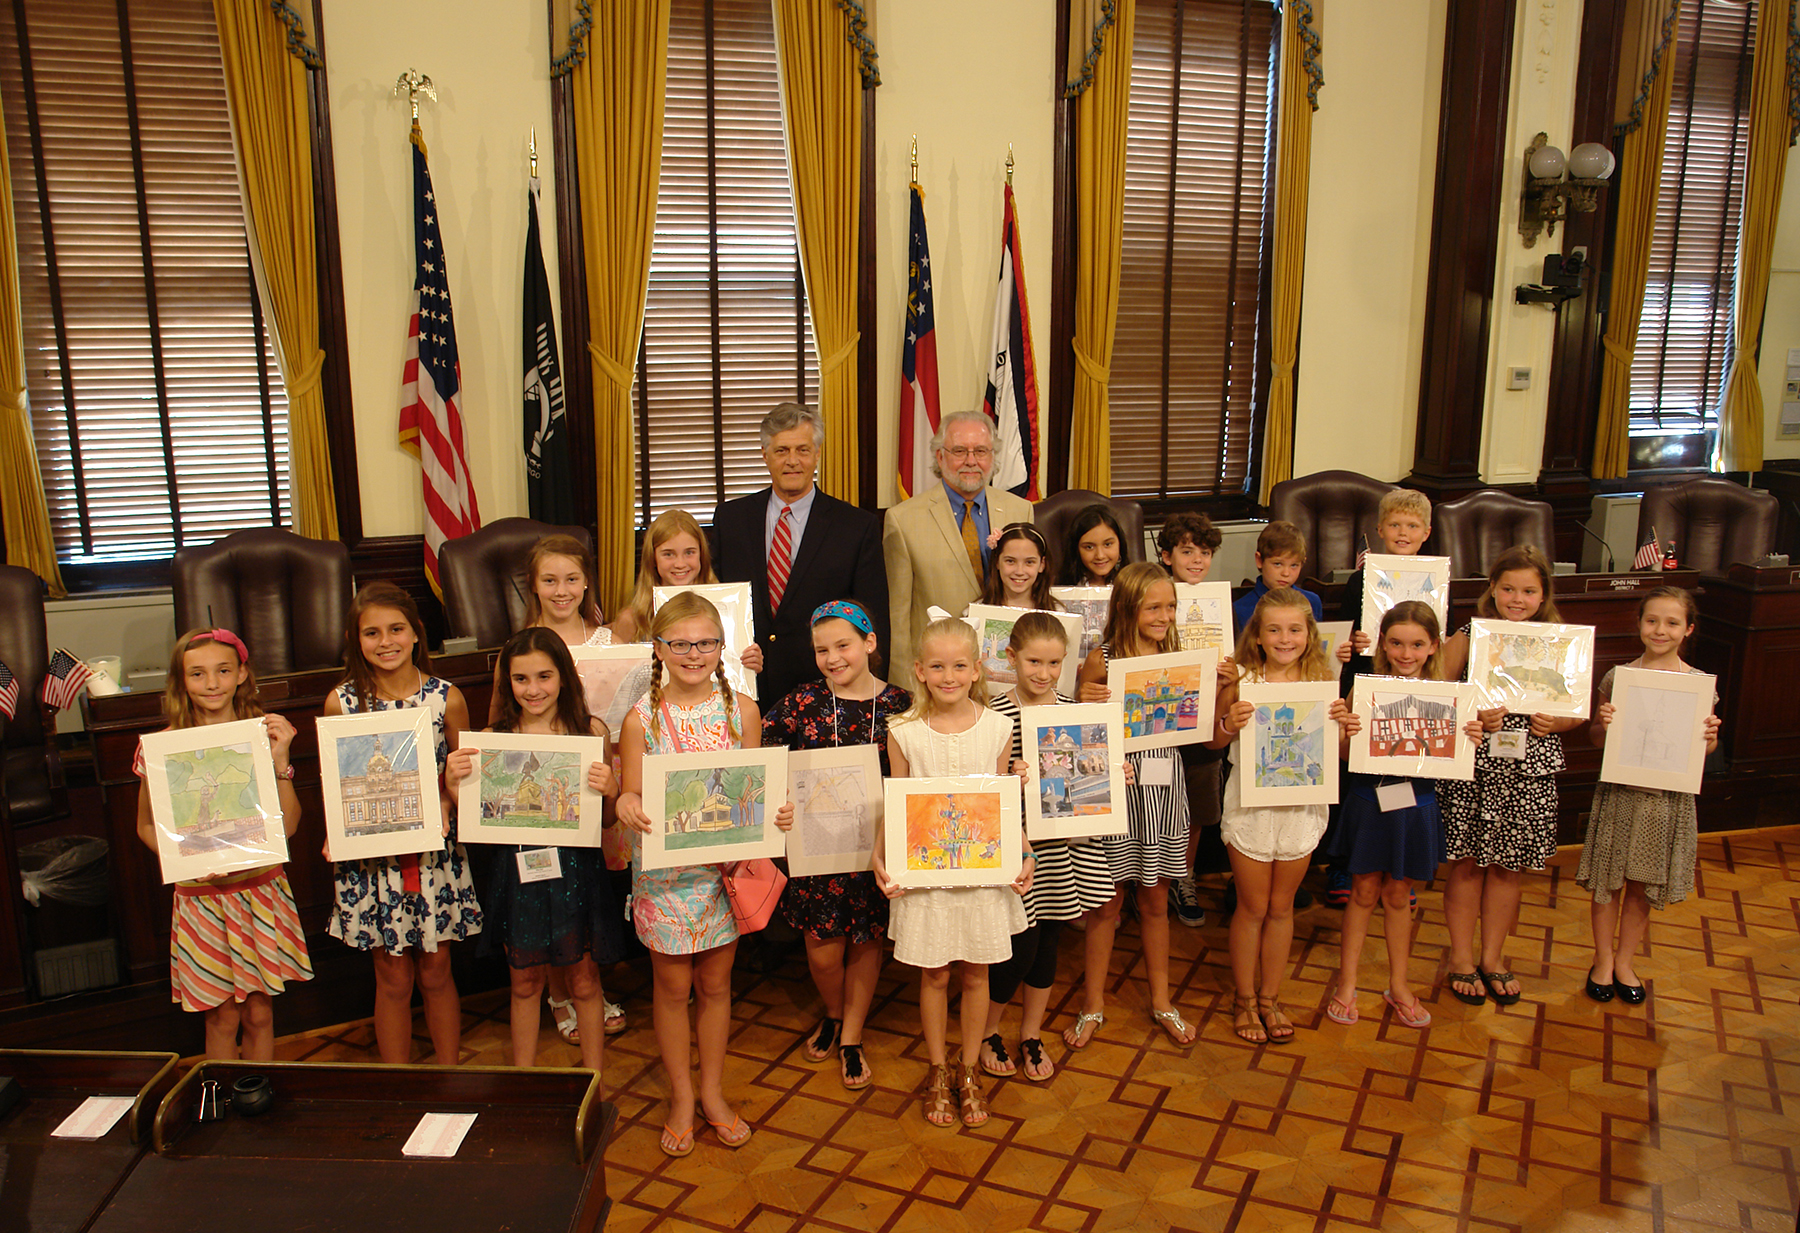 City of Savannah Elementary School Art Competition Awards Ceremony 07062016.jpg